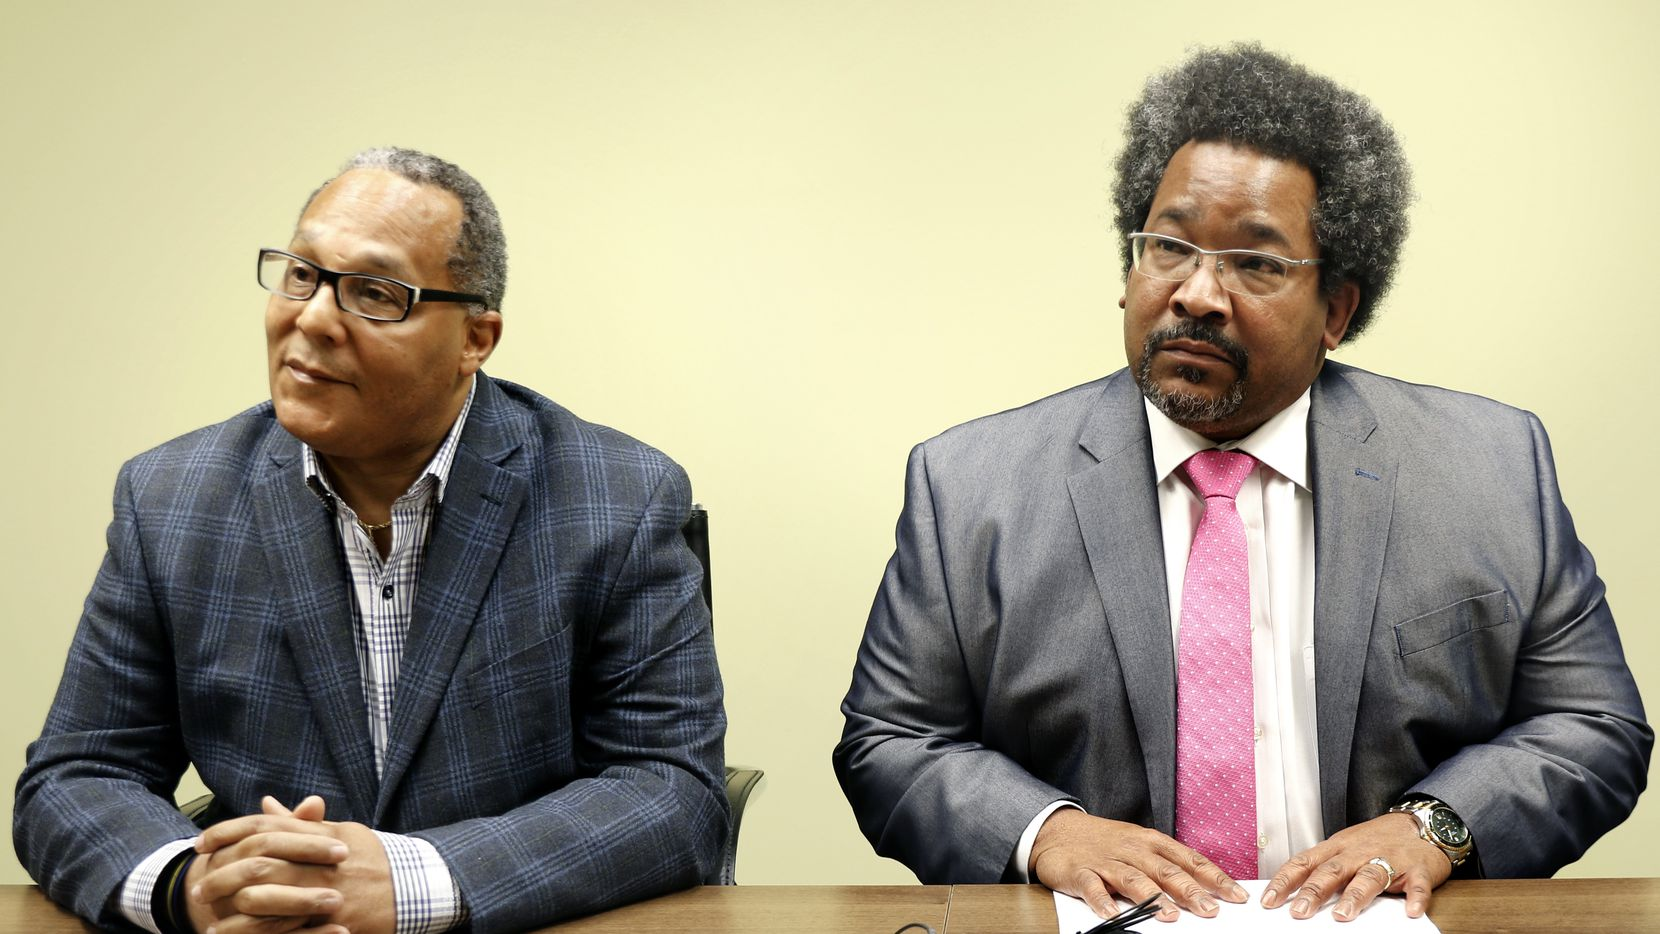 Kevin Felder (left) and his attorney, Russell Wilson, held a news conference Thursday about his indictment.